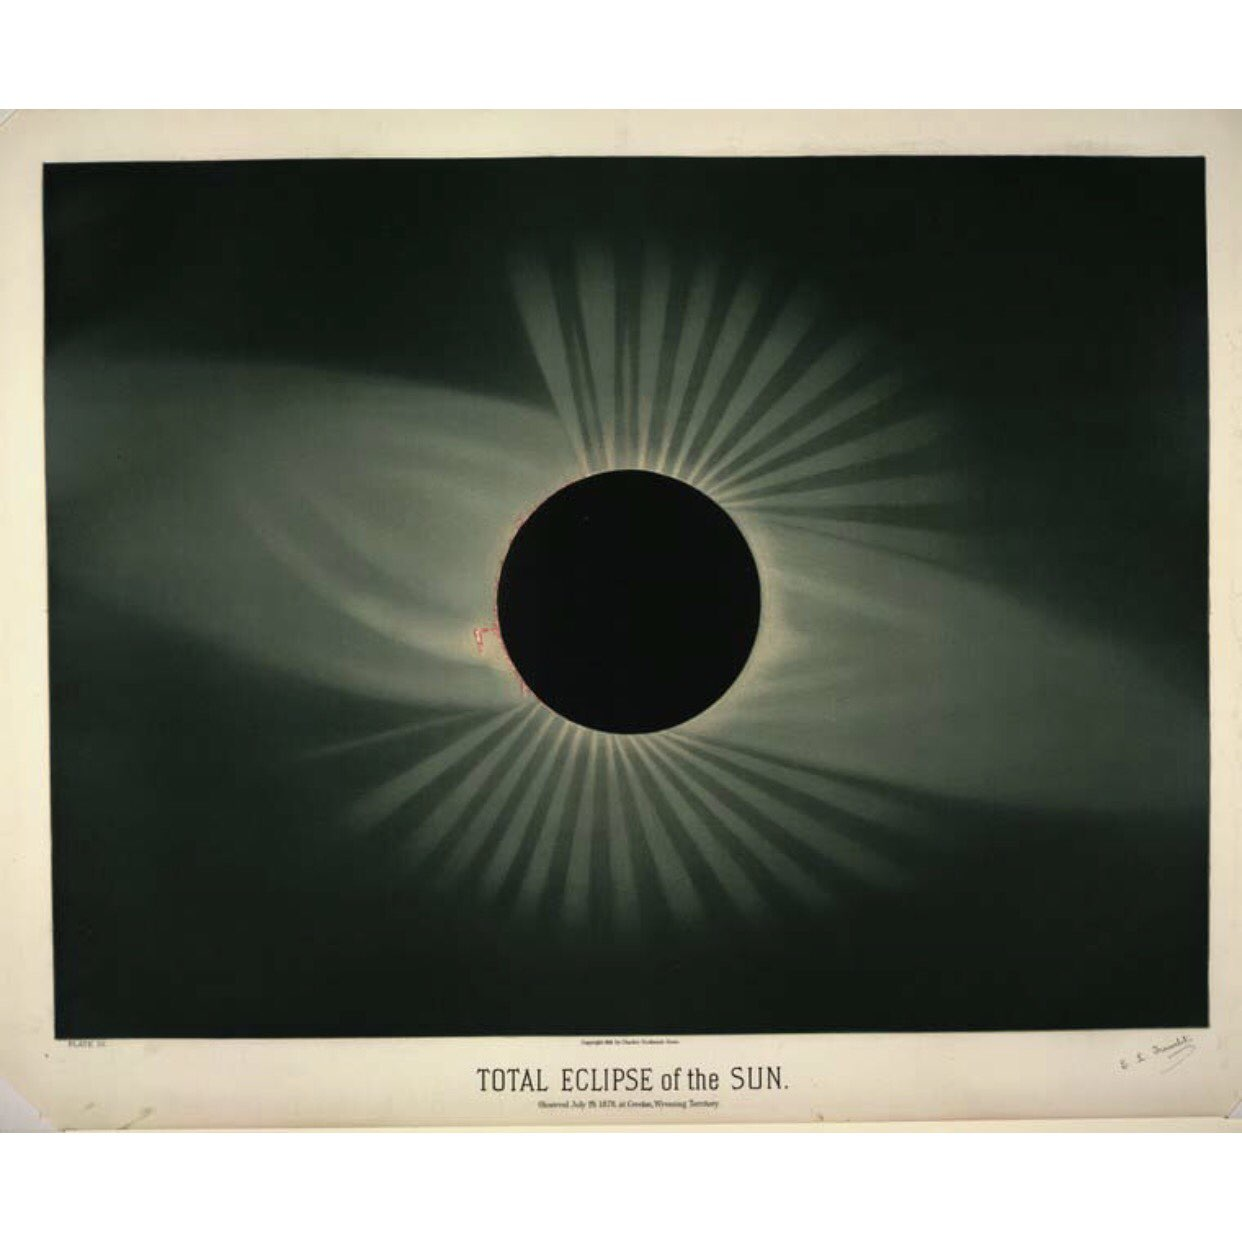 Total eclipse of the sun in 1878